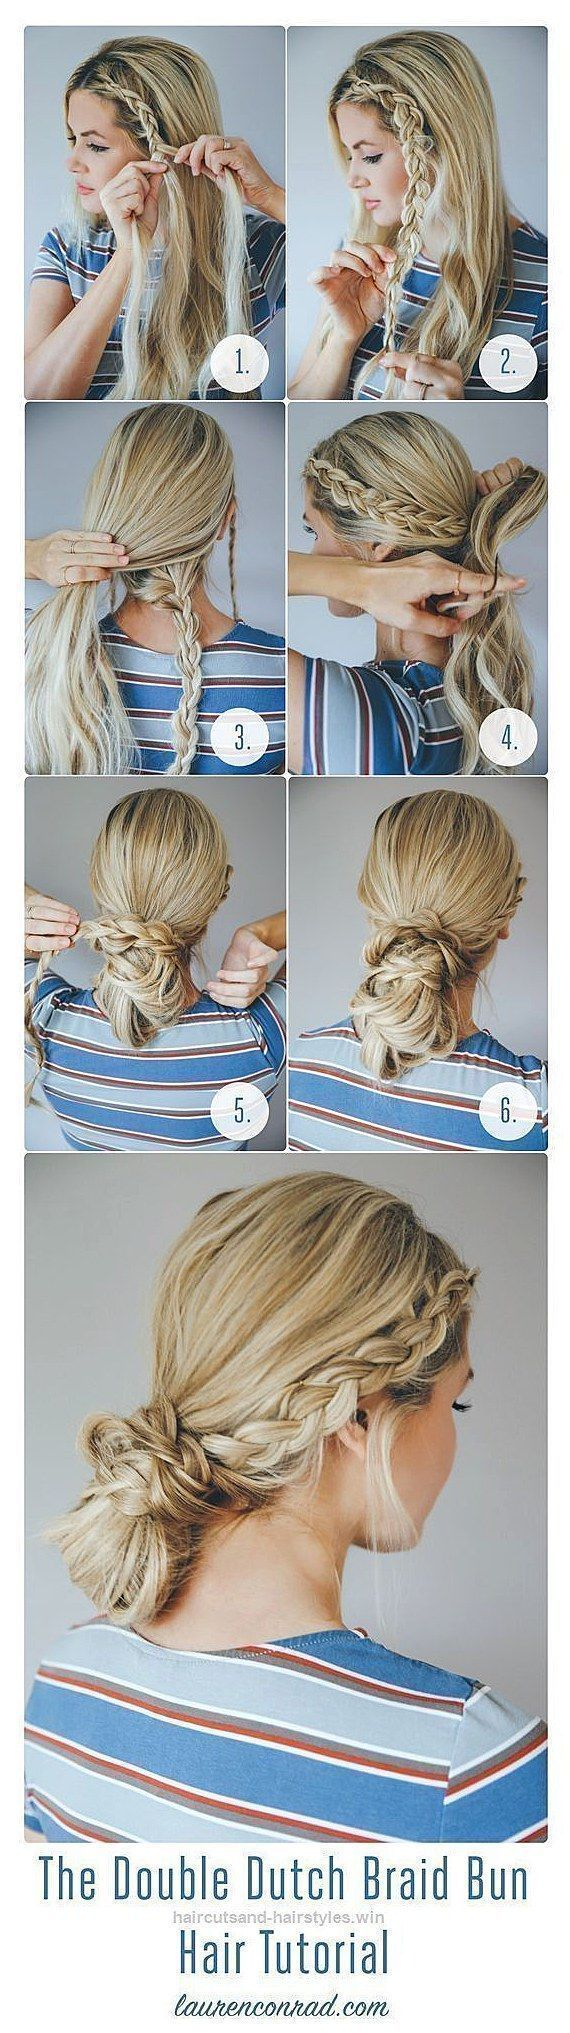 #Braided #Click #Cool #Easy #Fitness #guess – - New Site - #Braided #click #Cool #Easy #Fitness #gue...